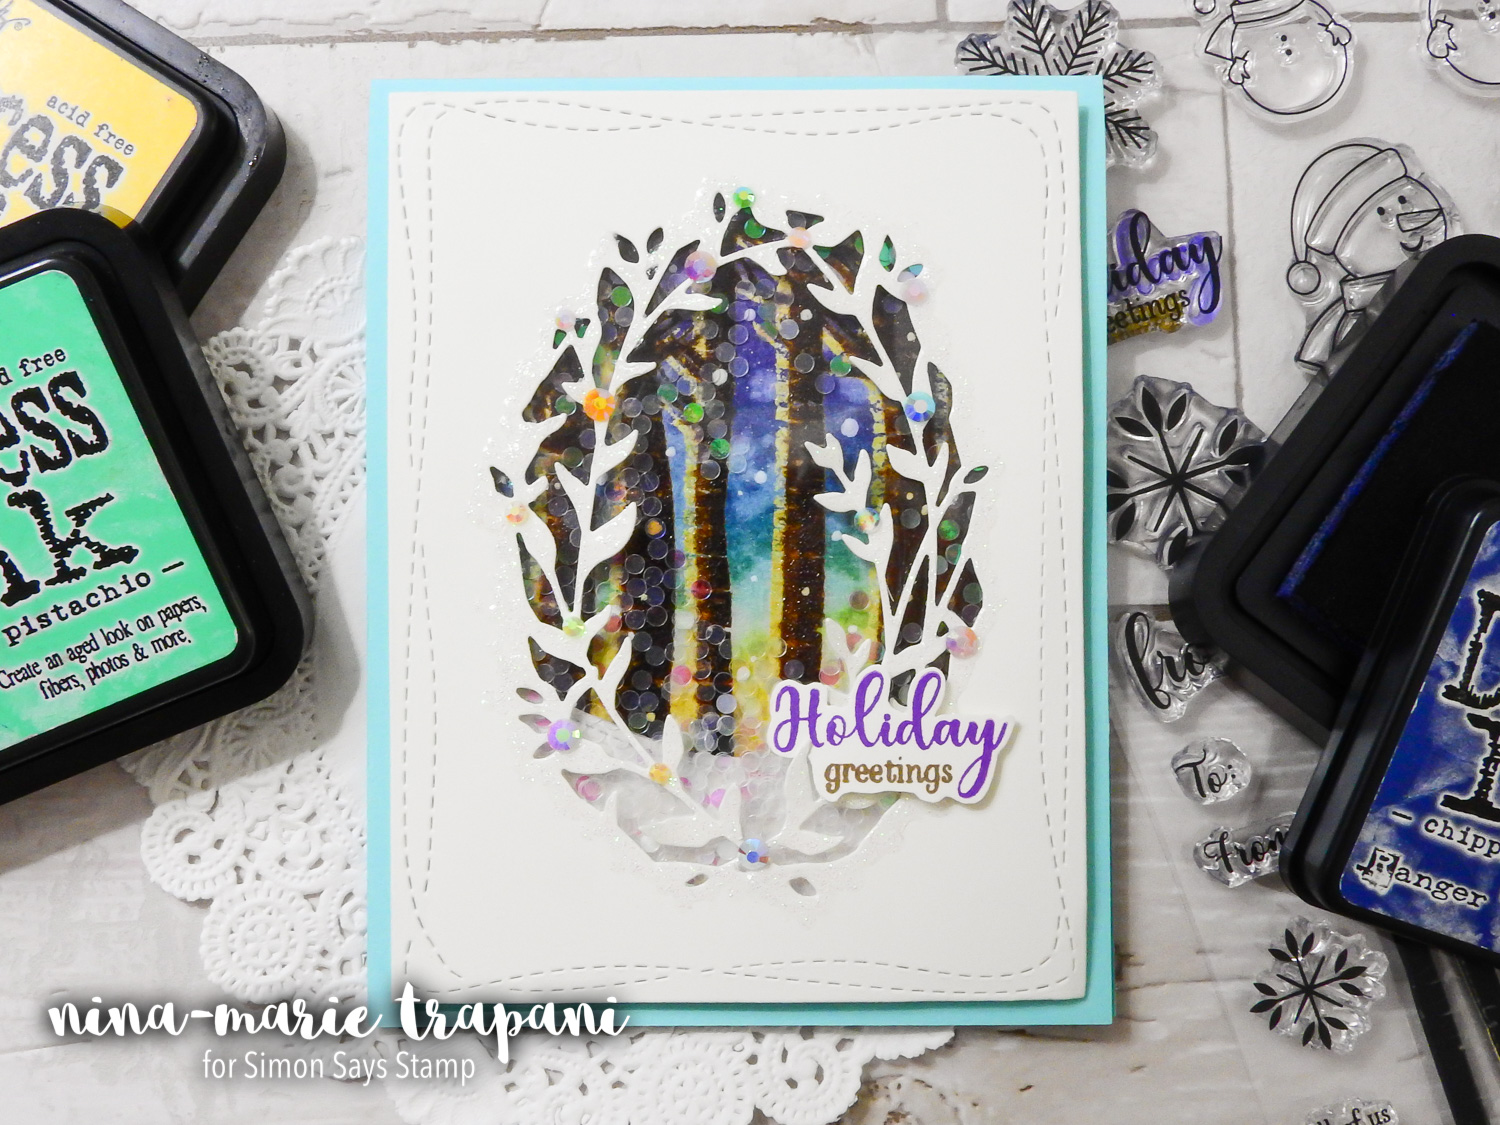 Distress Ink Shaker Scene + Simon's STAMPtember Gina K. Designs Exclusive | Nina-Marie Design